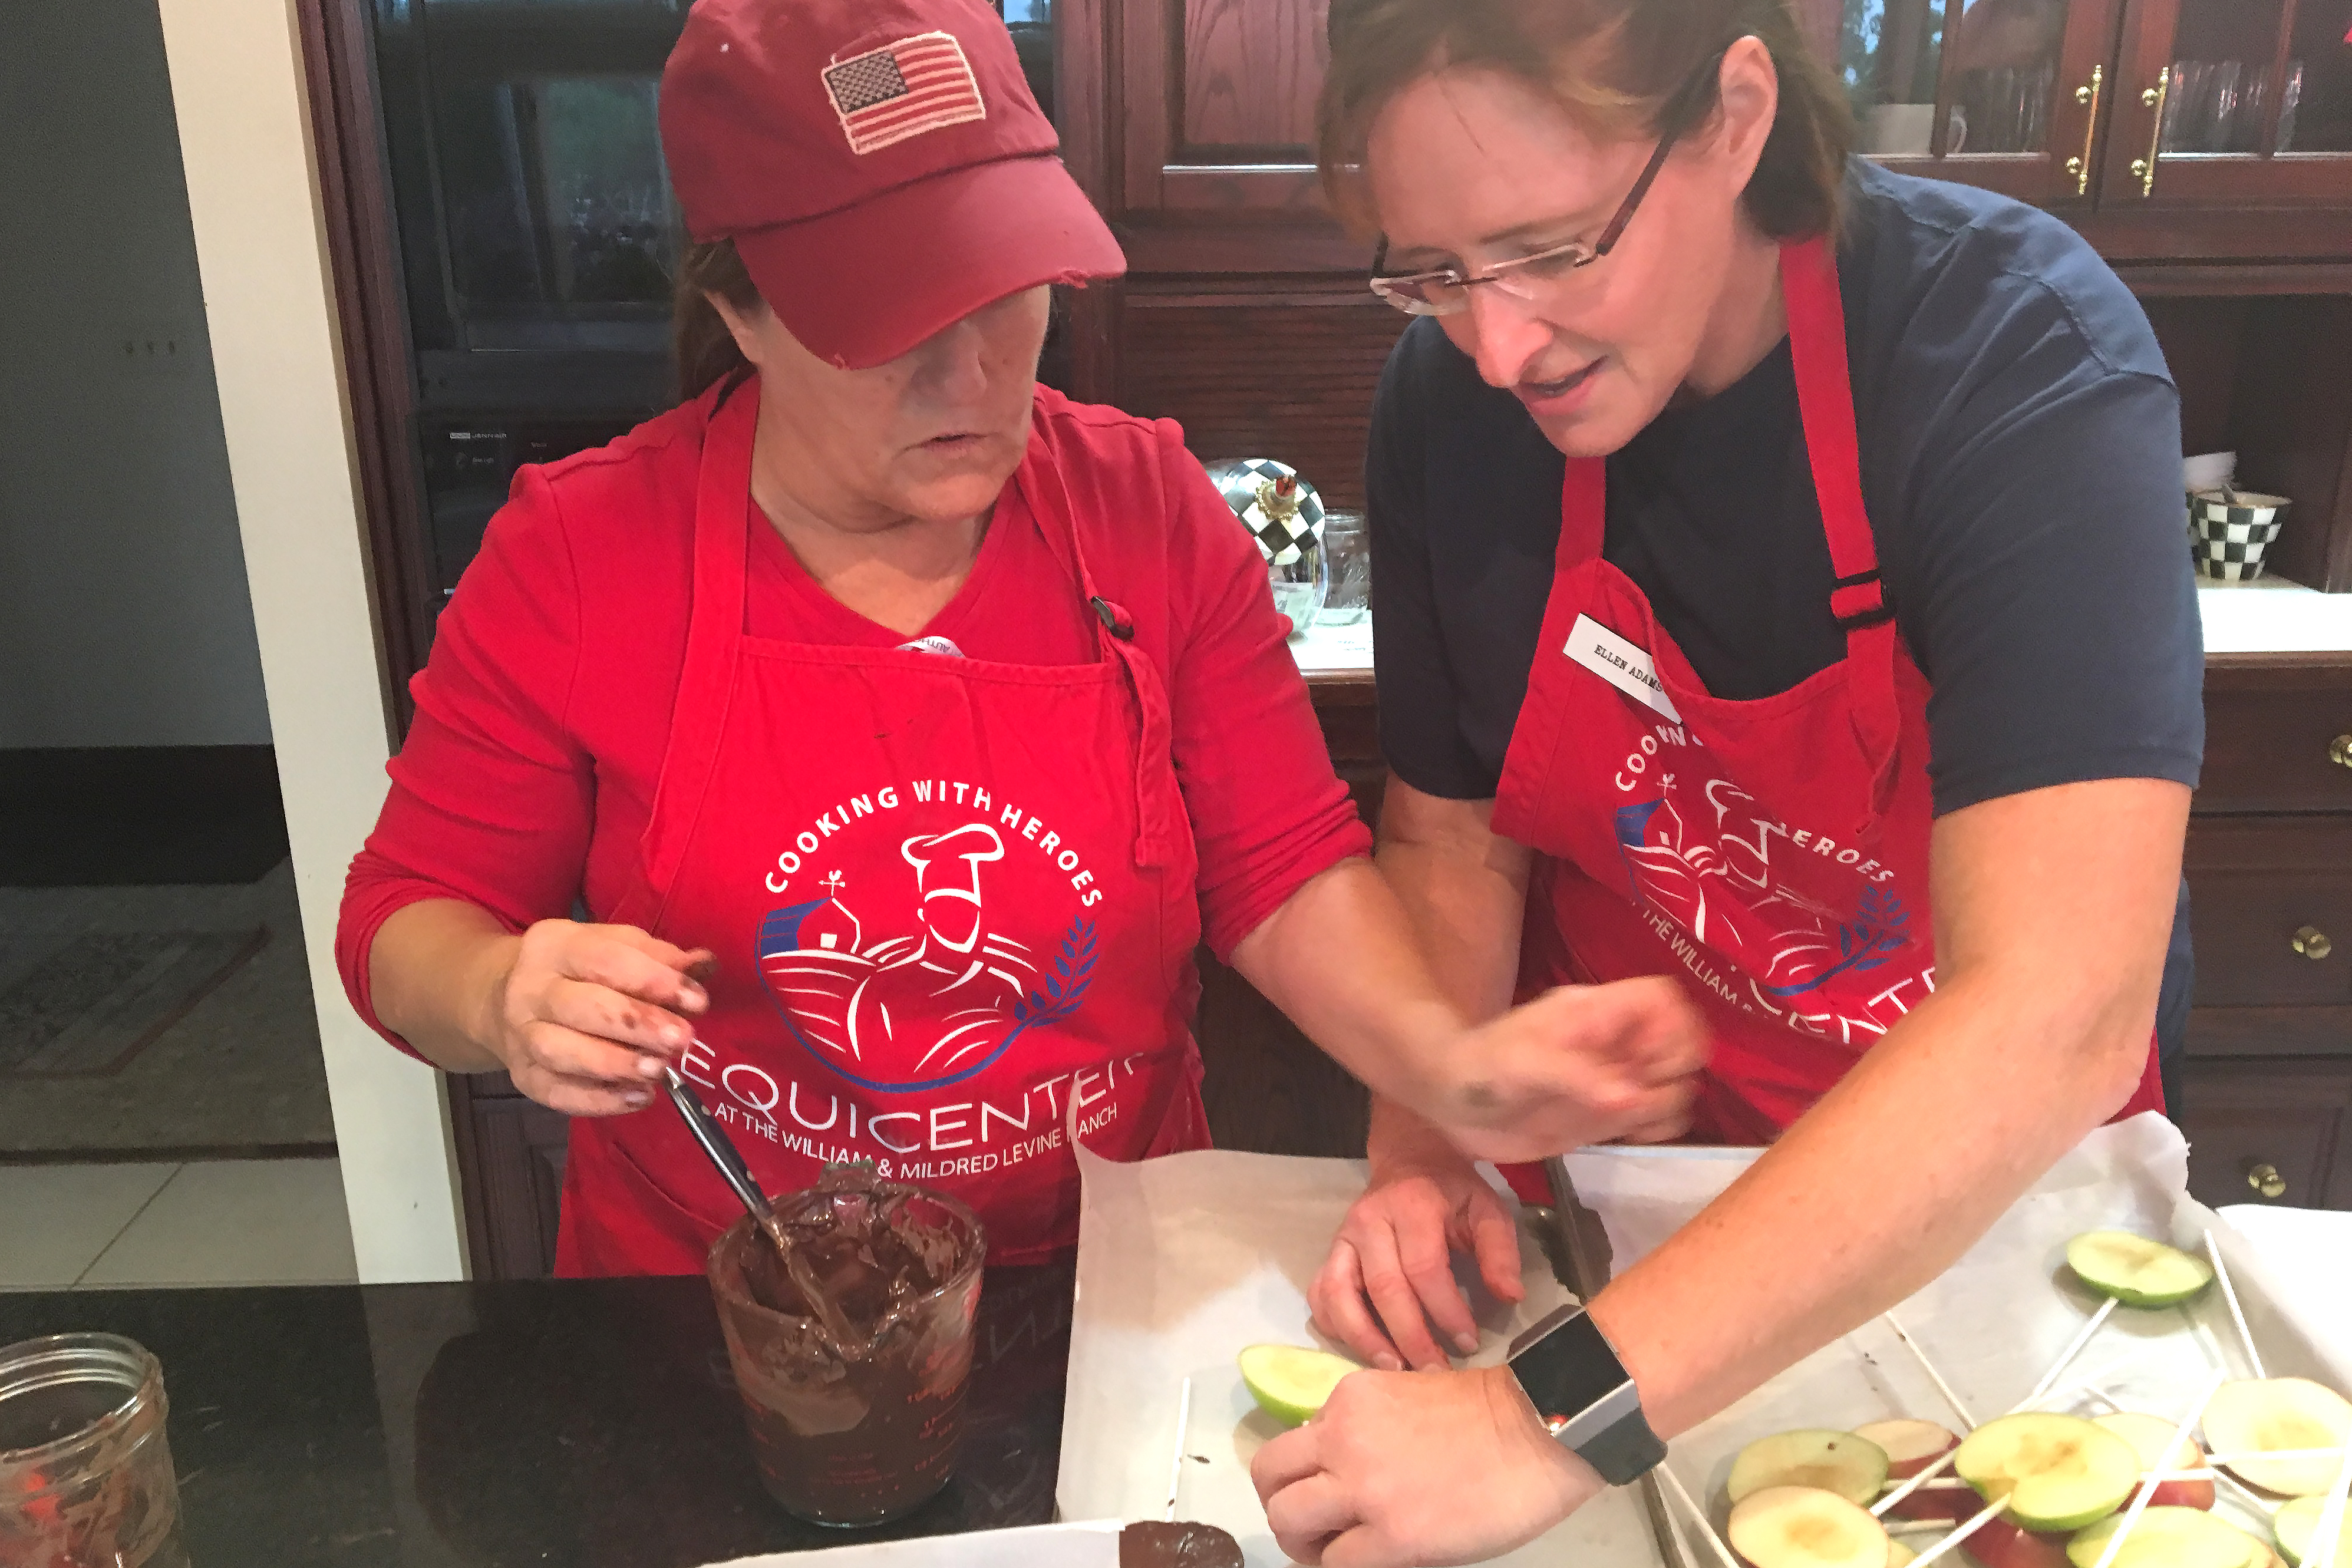 Caption: Chef Ellen Adams (right), an Air Force veteran, helps fellow veteran Linda Costello coat apples in chocolate., Credit: Sarah Harris/American Homefront